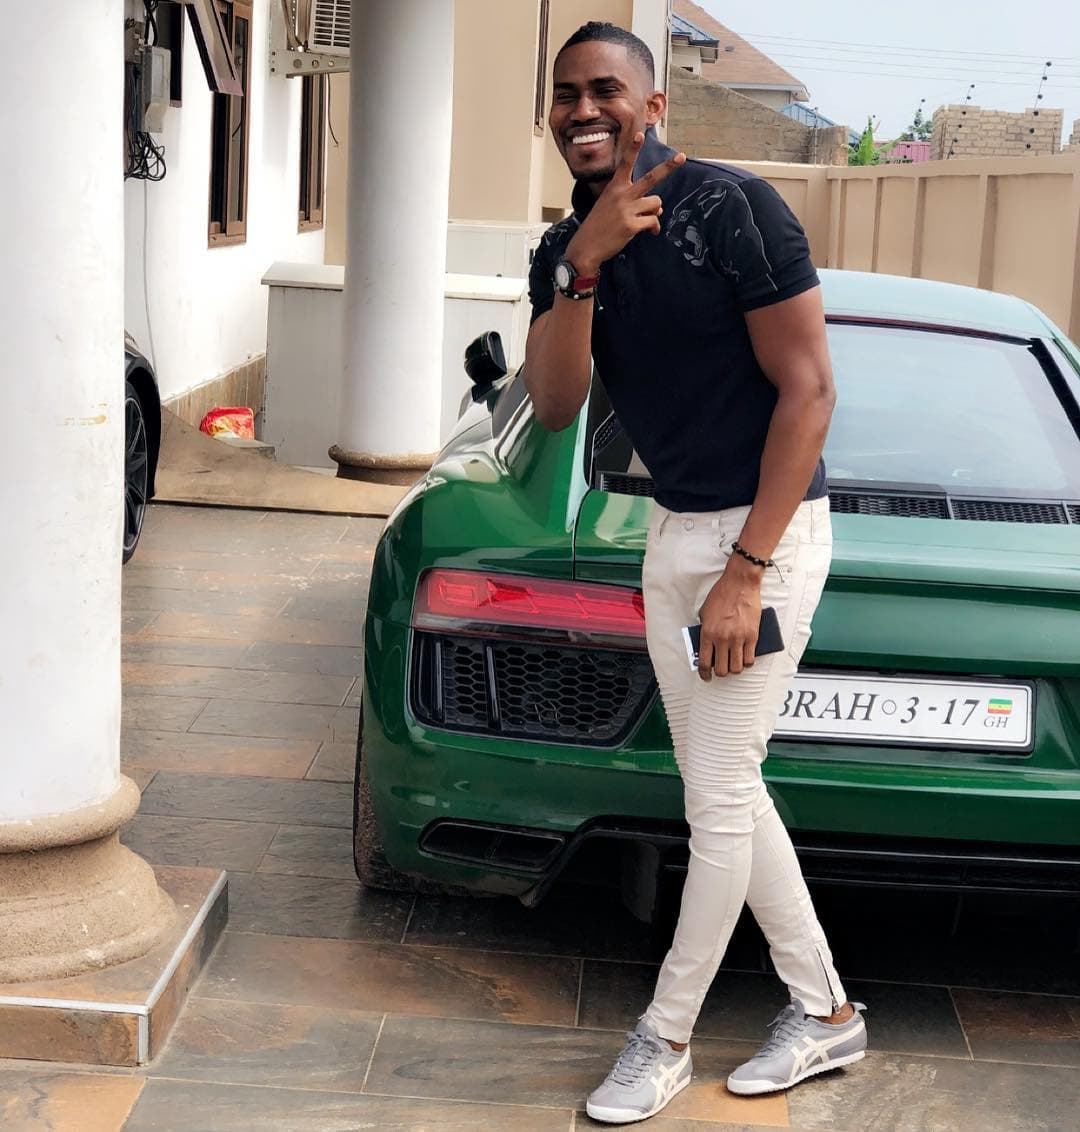 The whole world is against me because of my money - Ibrah 1 reveals